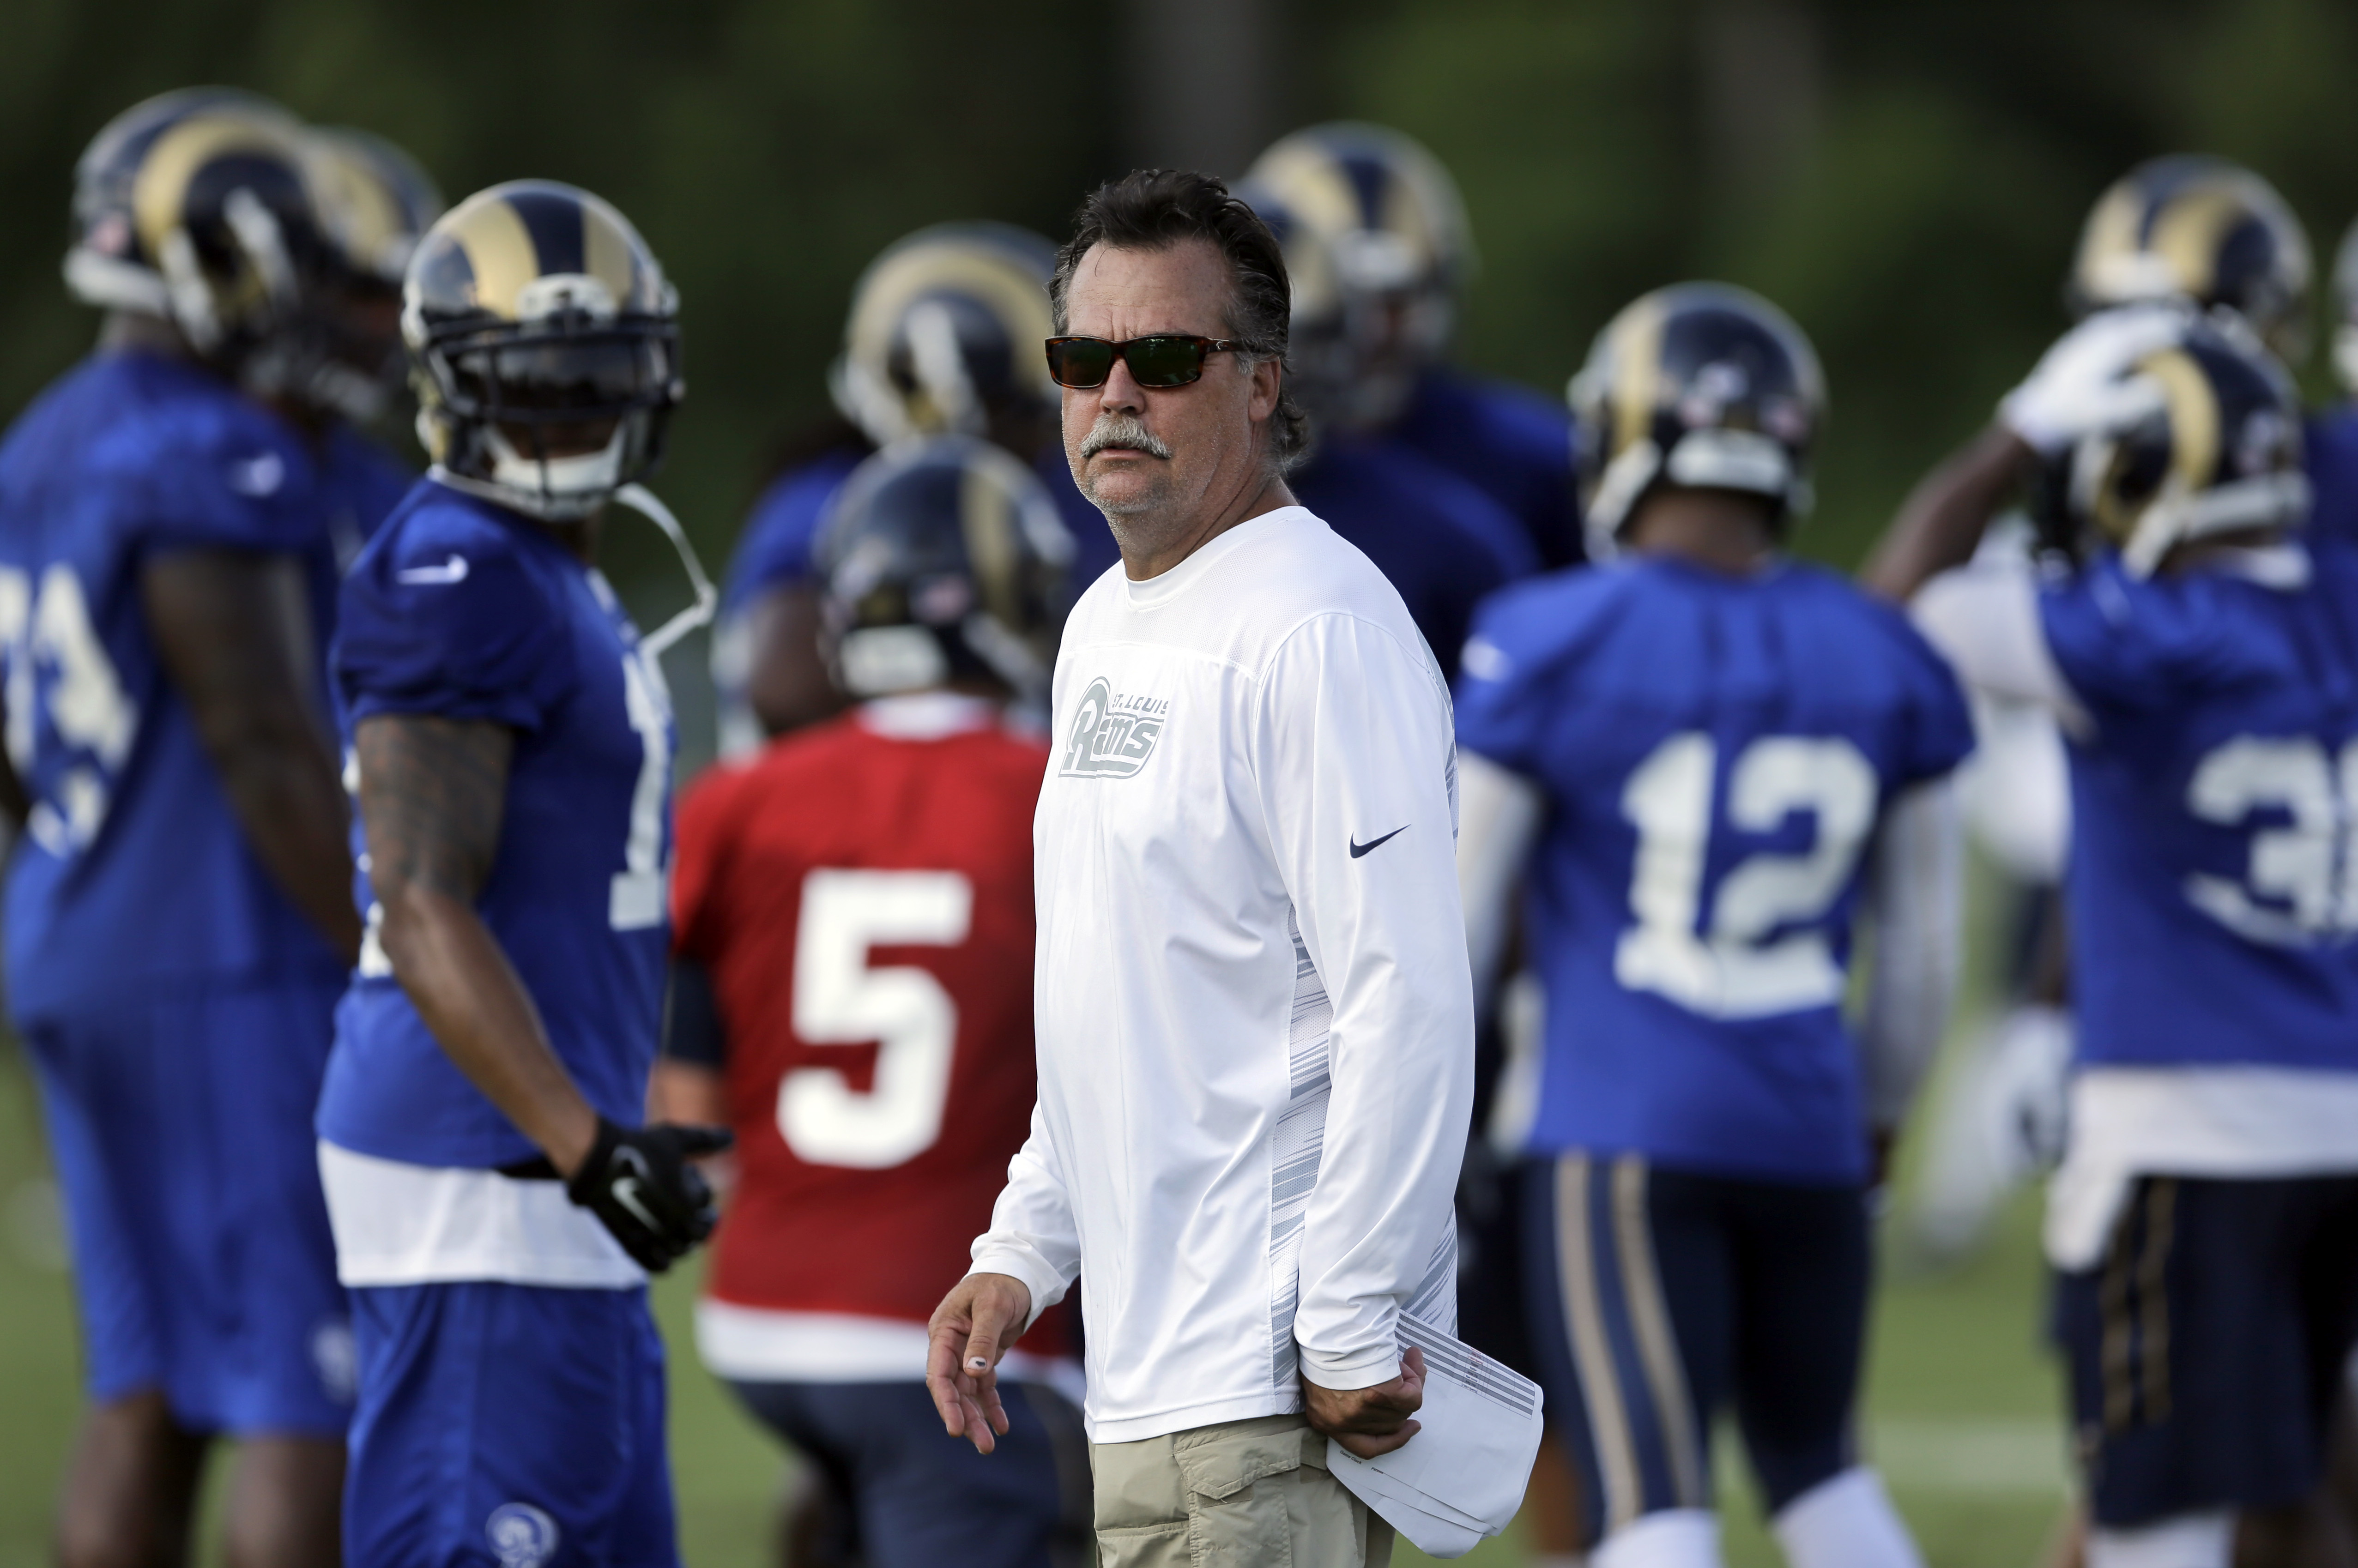 St. Louis Rams head coach Jeff Fisher watches his team during training camp at the NFL football team's practice facility, Sunday, Aug. 2, 2015, in St. Louis. (AP Photo/Jeff Roberson)